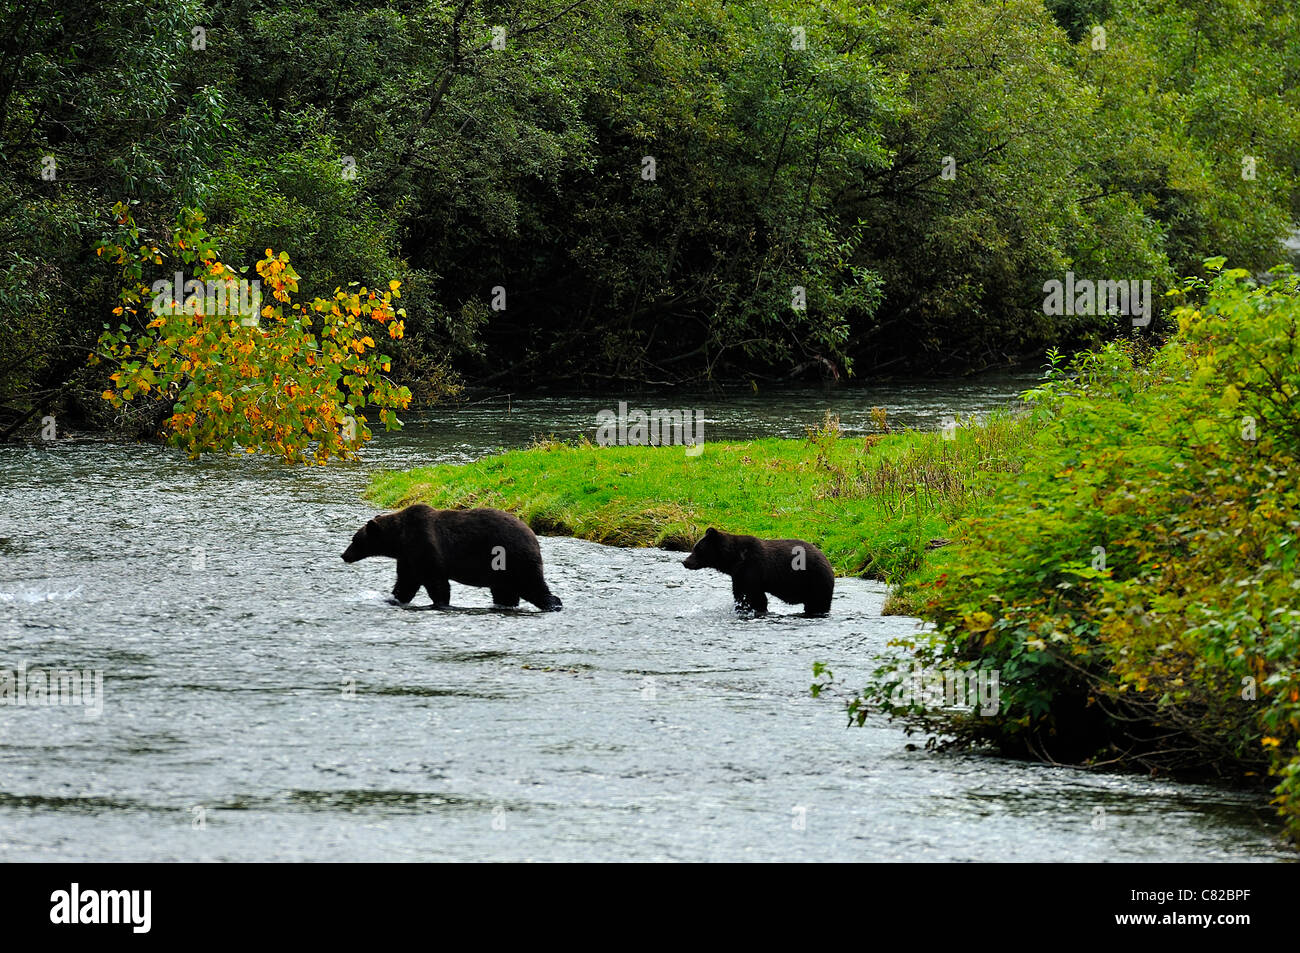 Two grizzly bears walking out into the stream - Stock Image